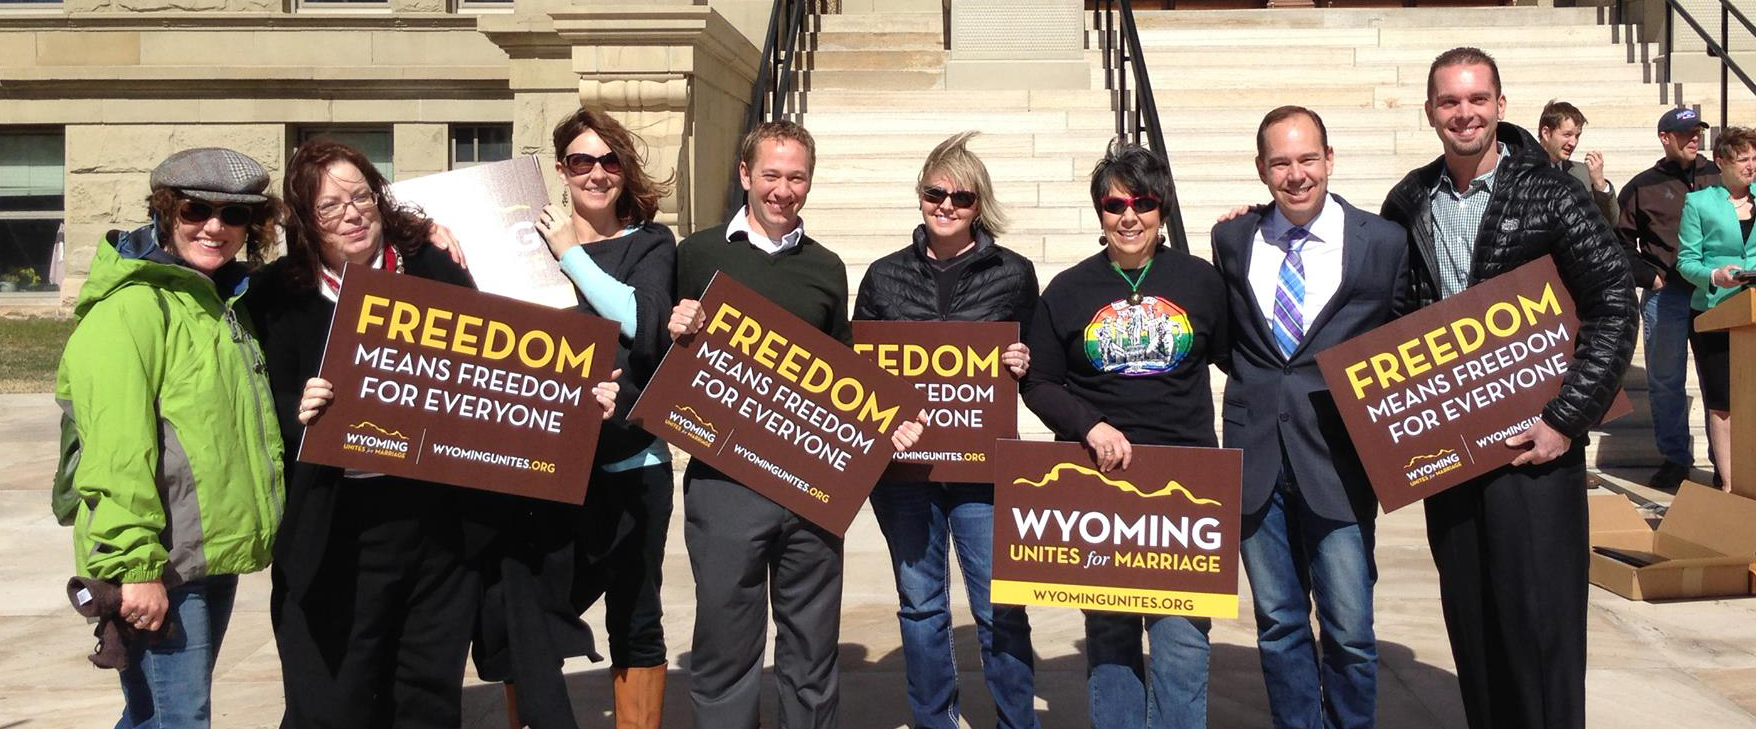 In 2014 Freedom to Marry worked with state and national partners to build Wyoming Unites for Marriage, which helped make the case for the freedom to marry in Wyoming.